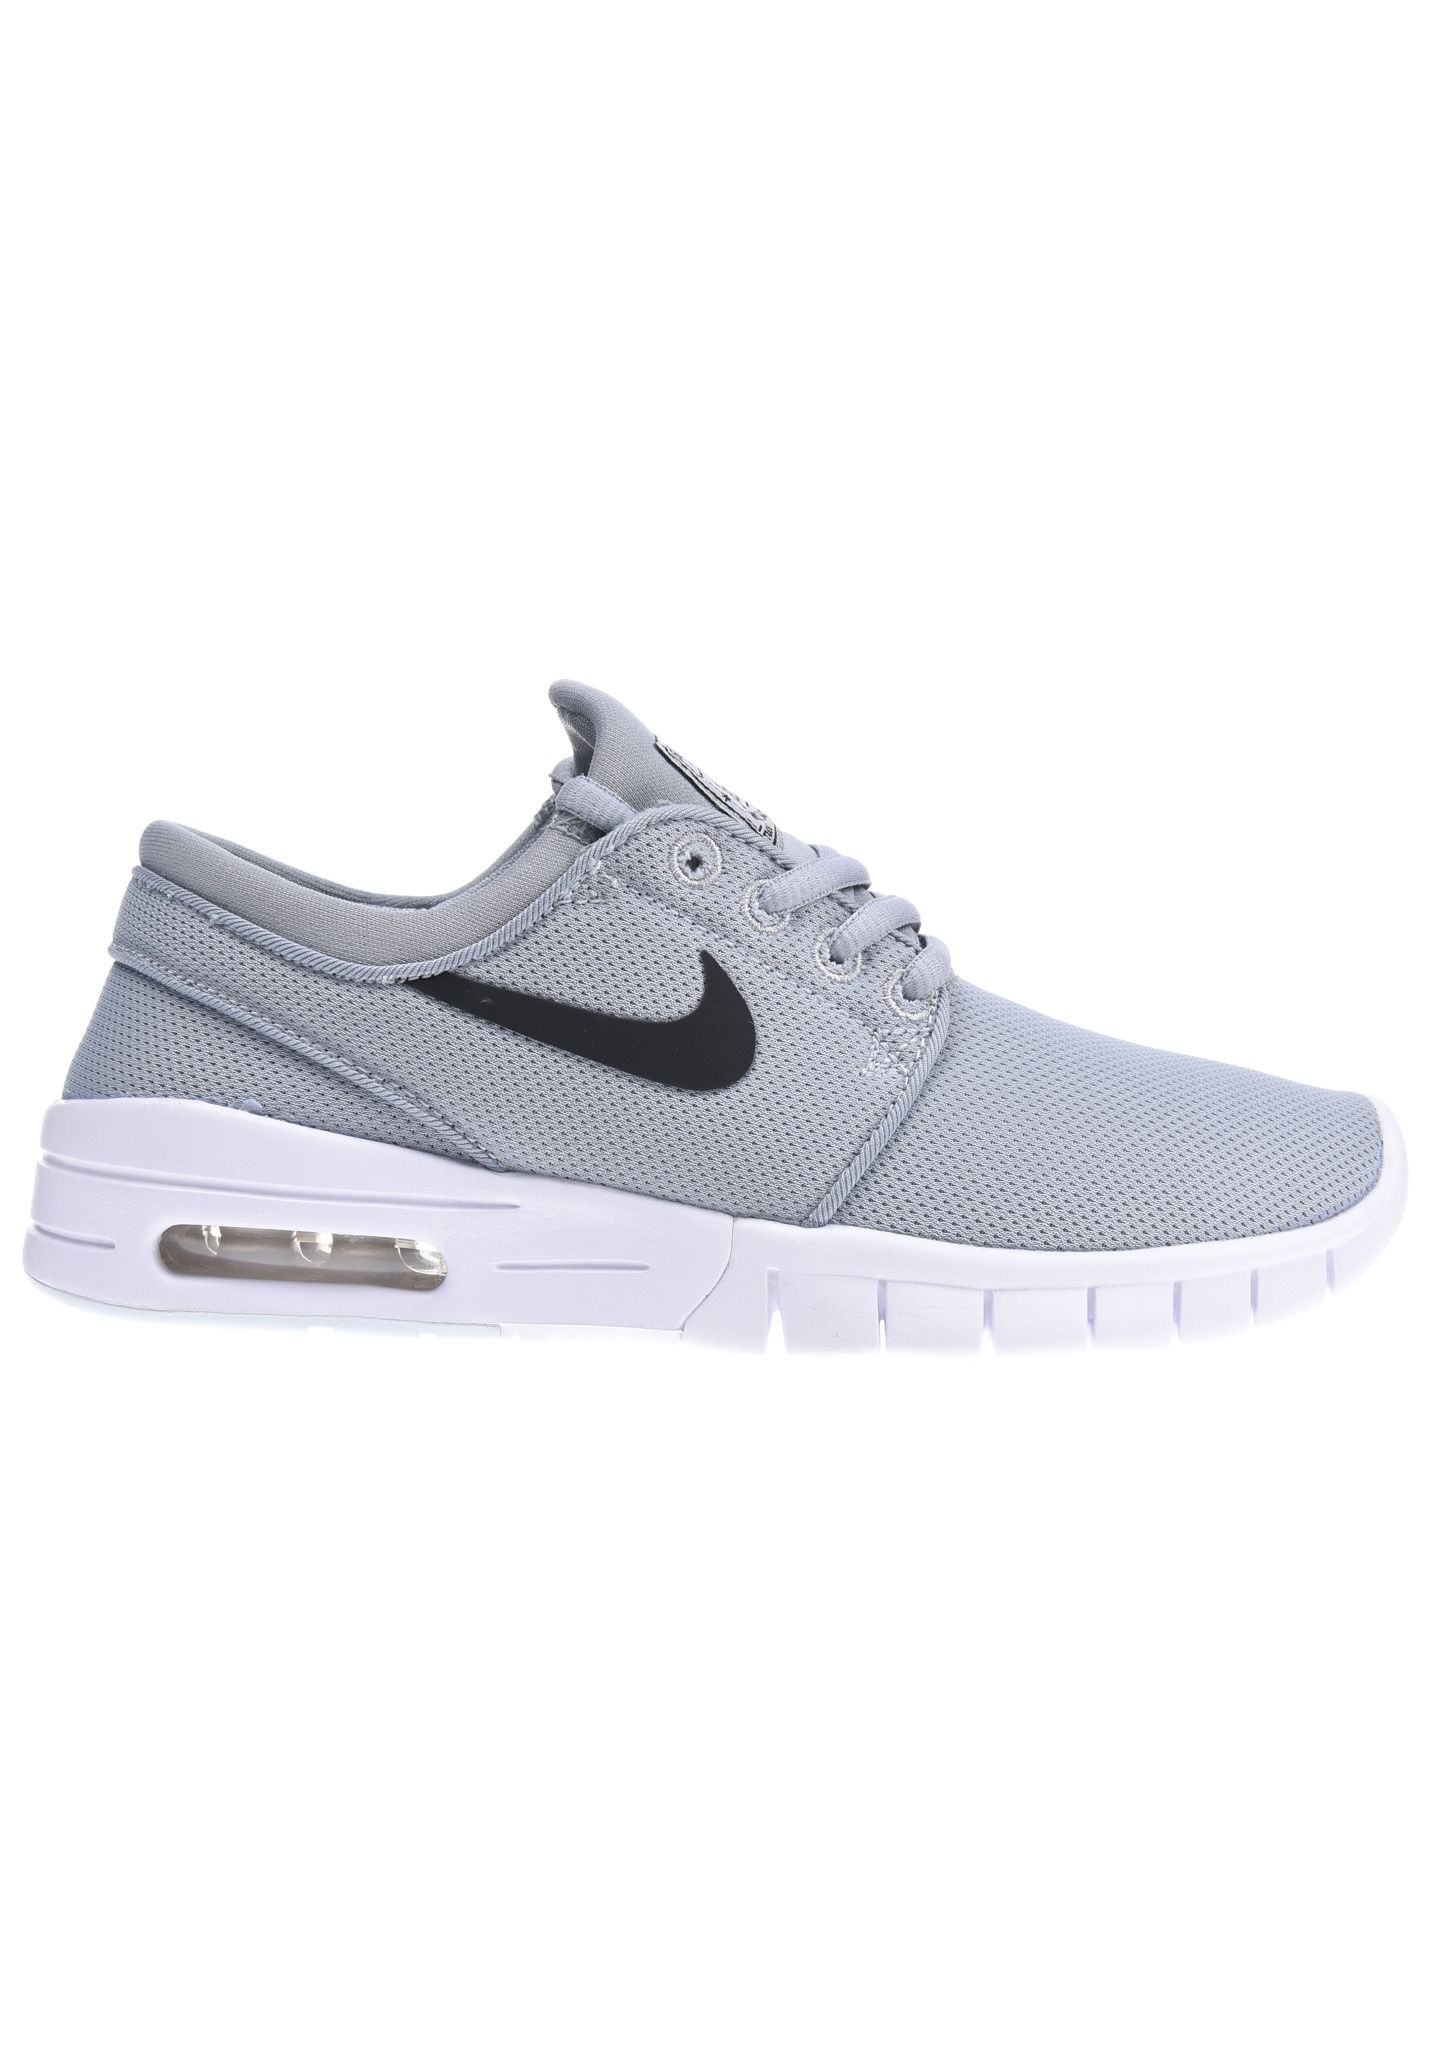 NIKE SB Stefan Janoski Max - Sneakers for Kids Boys - Grey - Planet Sports 62560a6adfa2